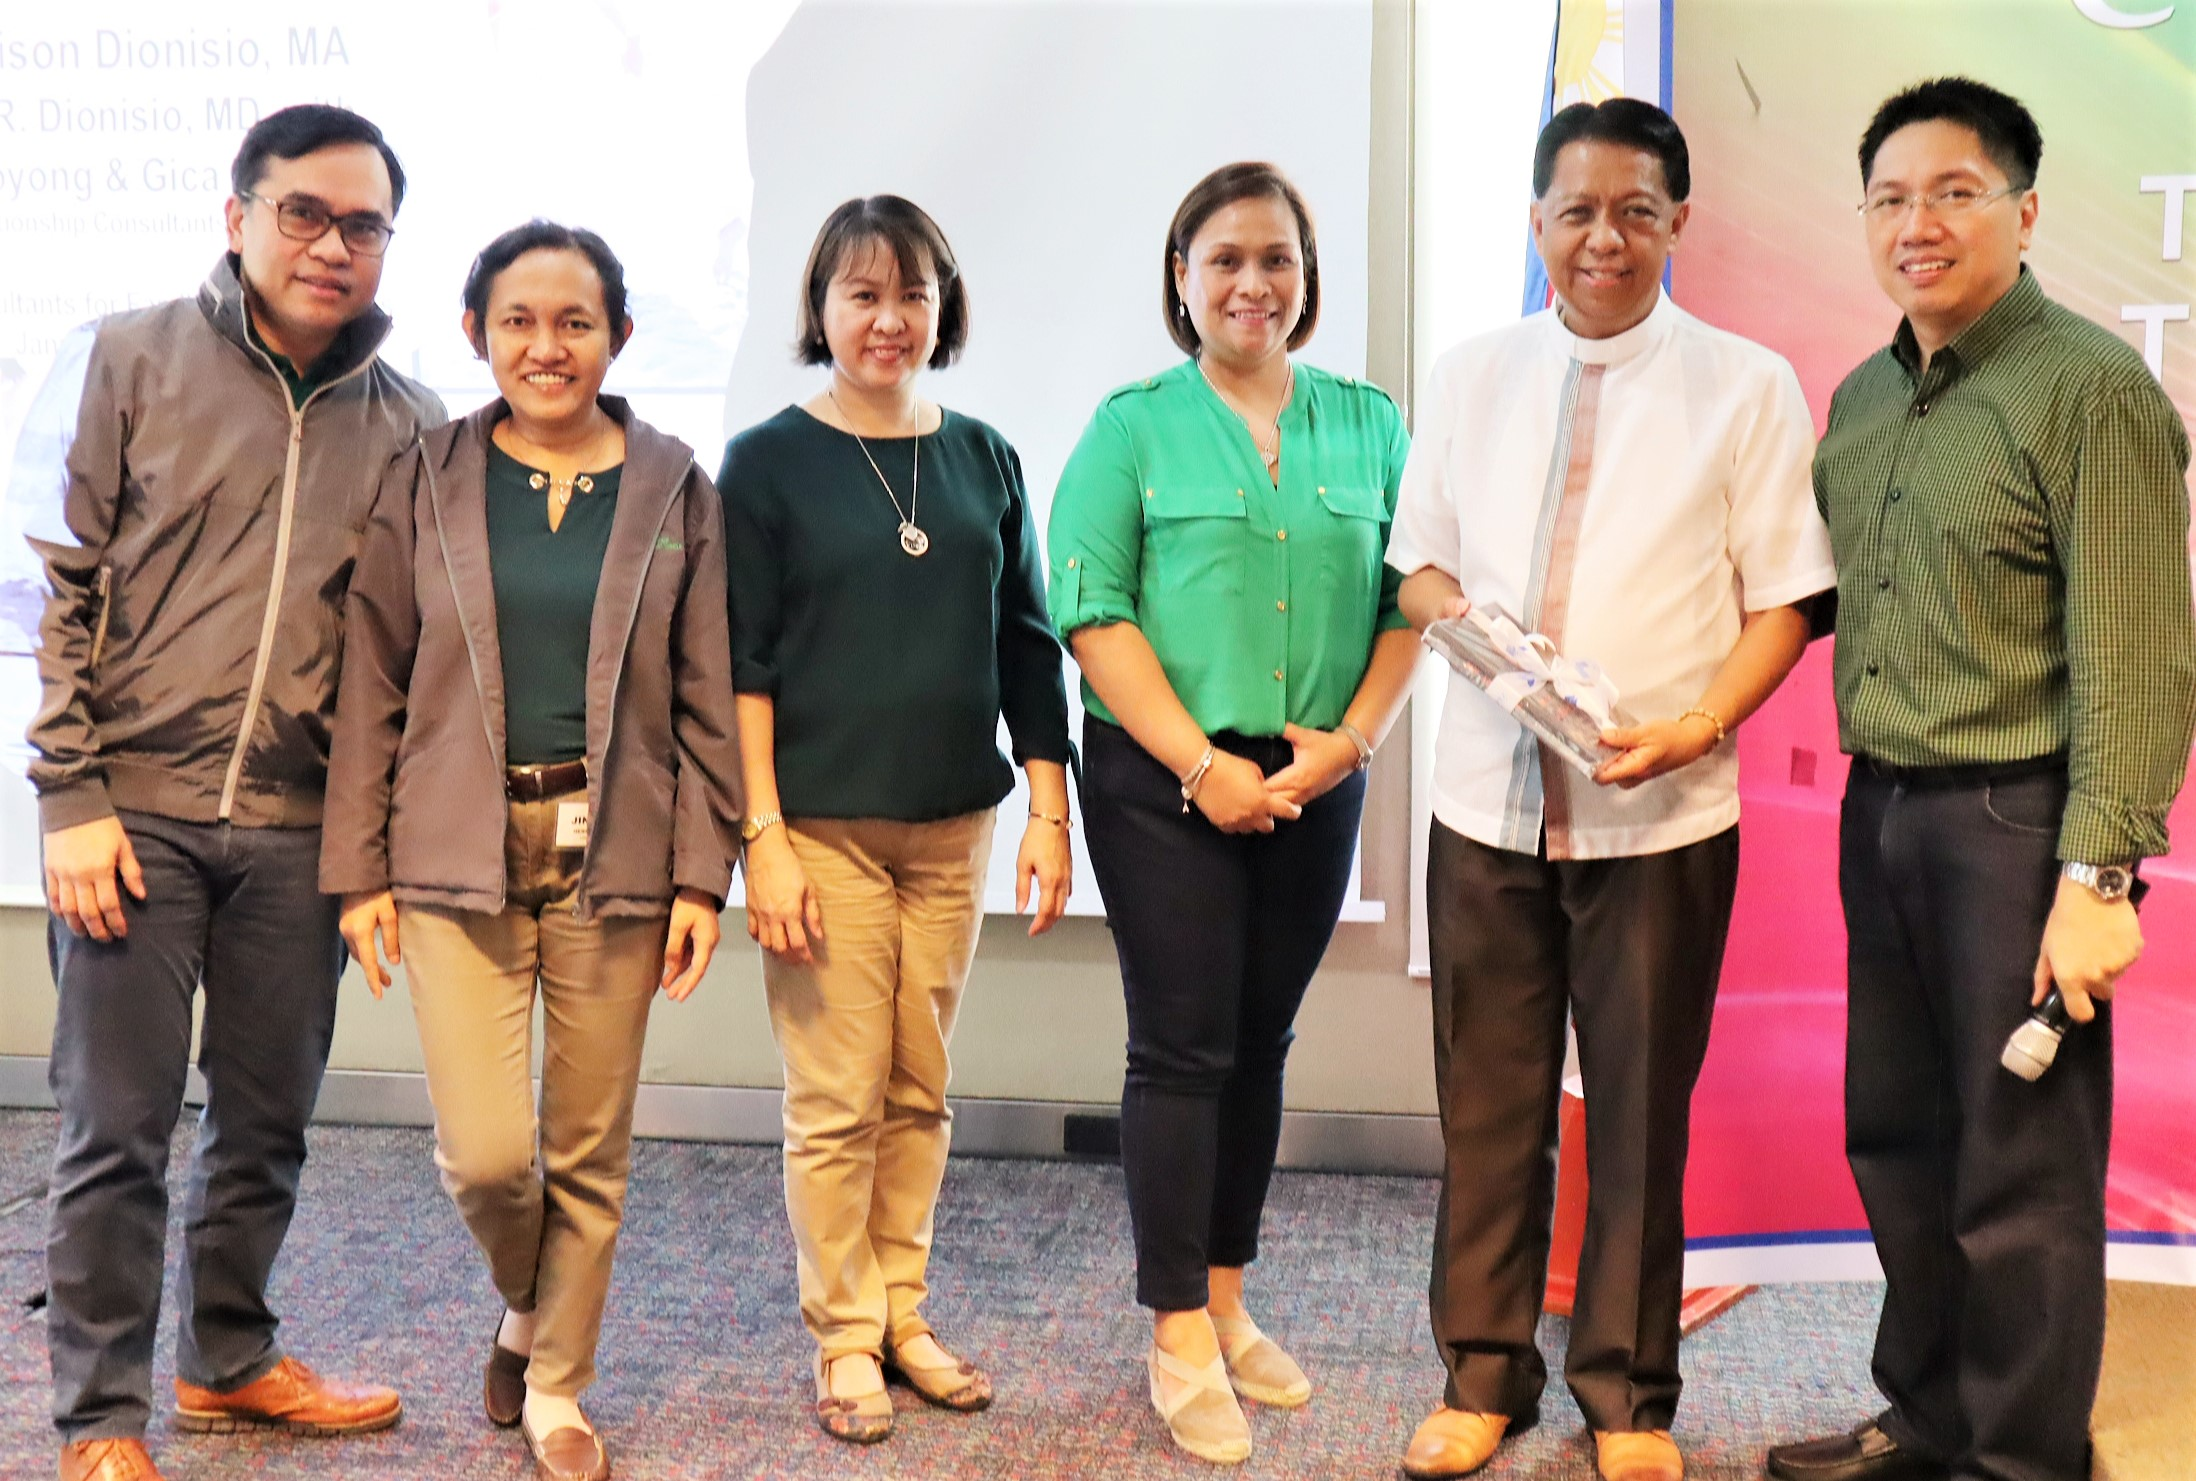 Rev. Fr. Glenn Paul Gomez (5th from left) with the Comptrollers' Circle core team (l-r): Aldrin Cerrado of ABS-CBN, Jingle Hernandez of Lopez Inc., Lanie Caimol of Lopez Holdings, Mina Ubaña of FPH and Jei-Jei Gertes of Third Generation Holdings